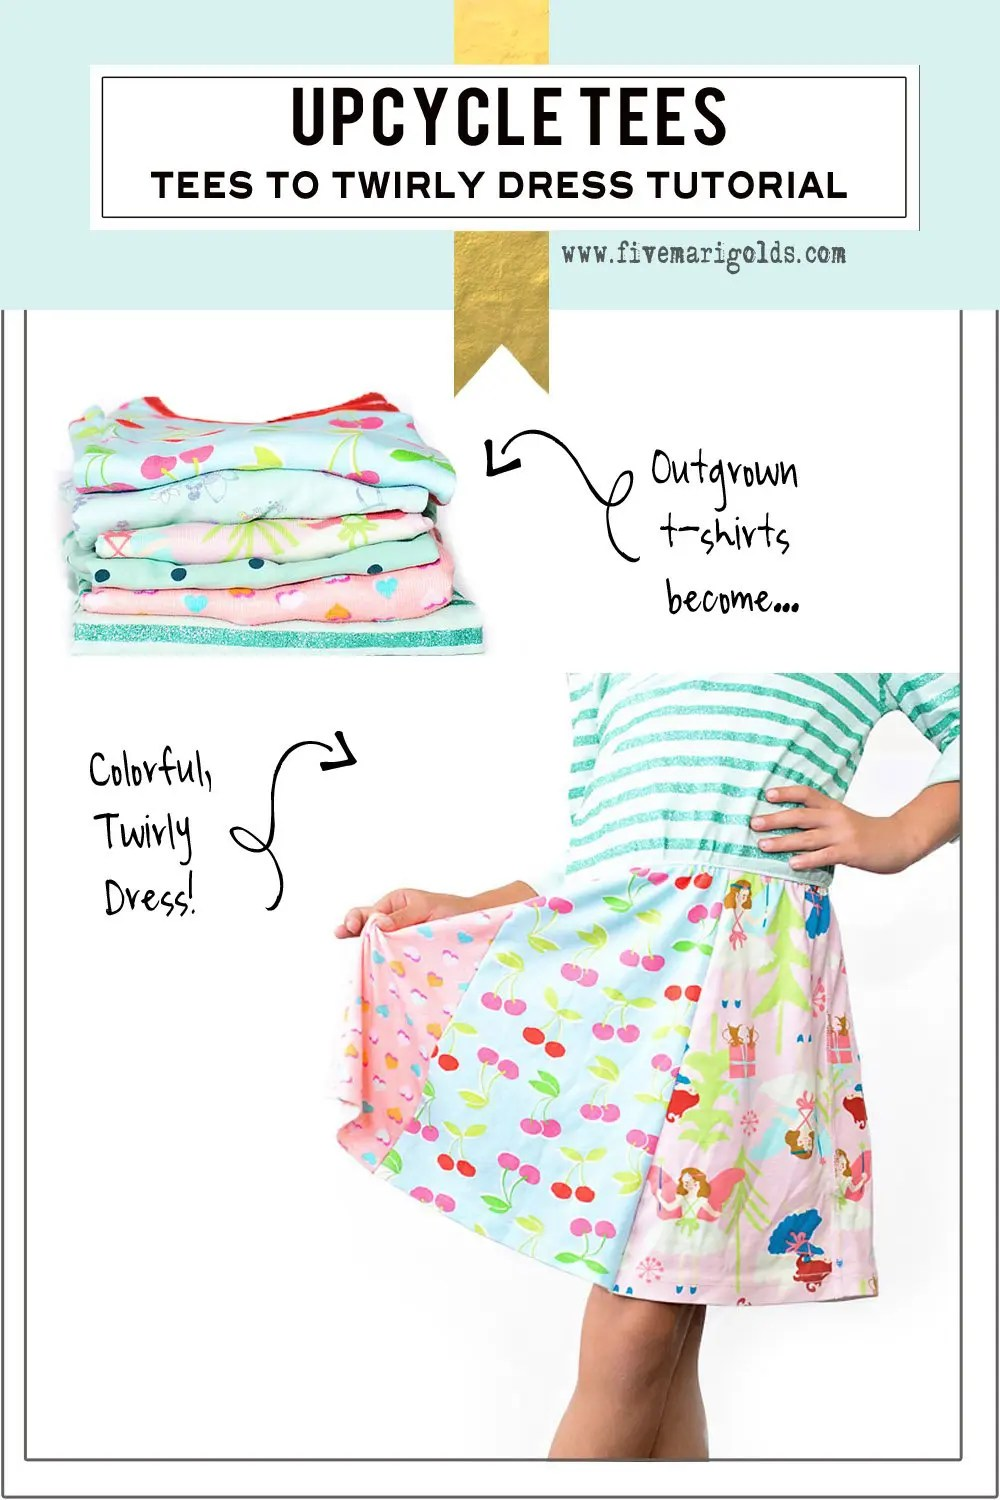 I love this! Upcycle outgrown tees to create a custom dress for girls.